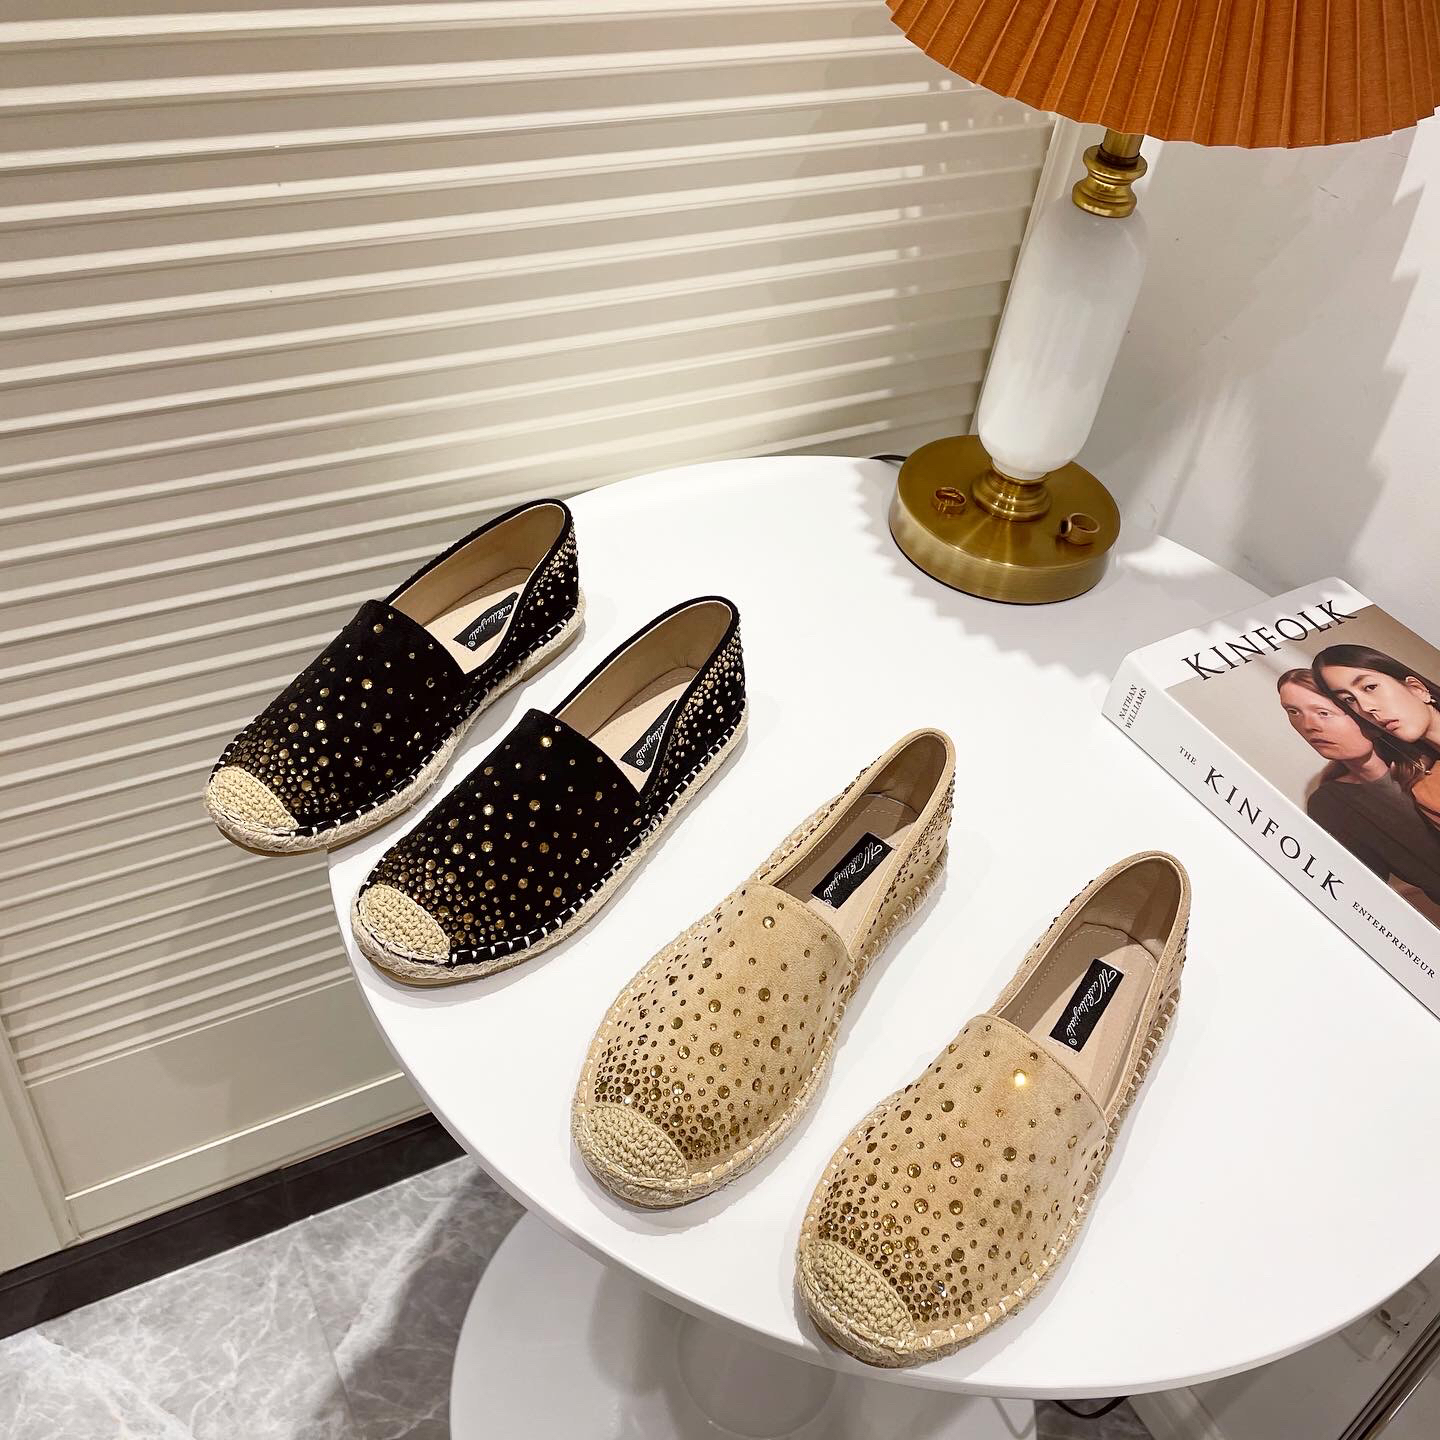 Chic strass embelli Espadrilles femmes chanvre chaussures bout